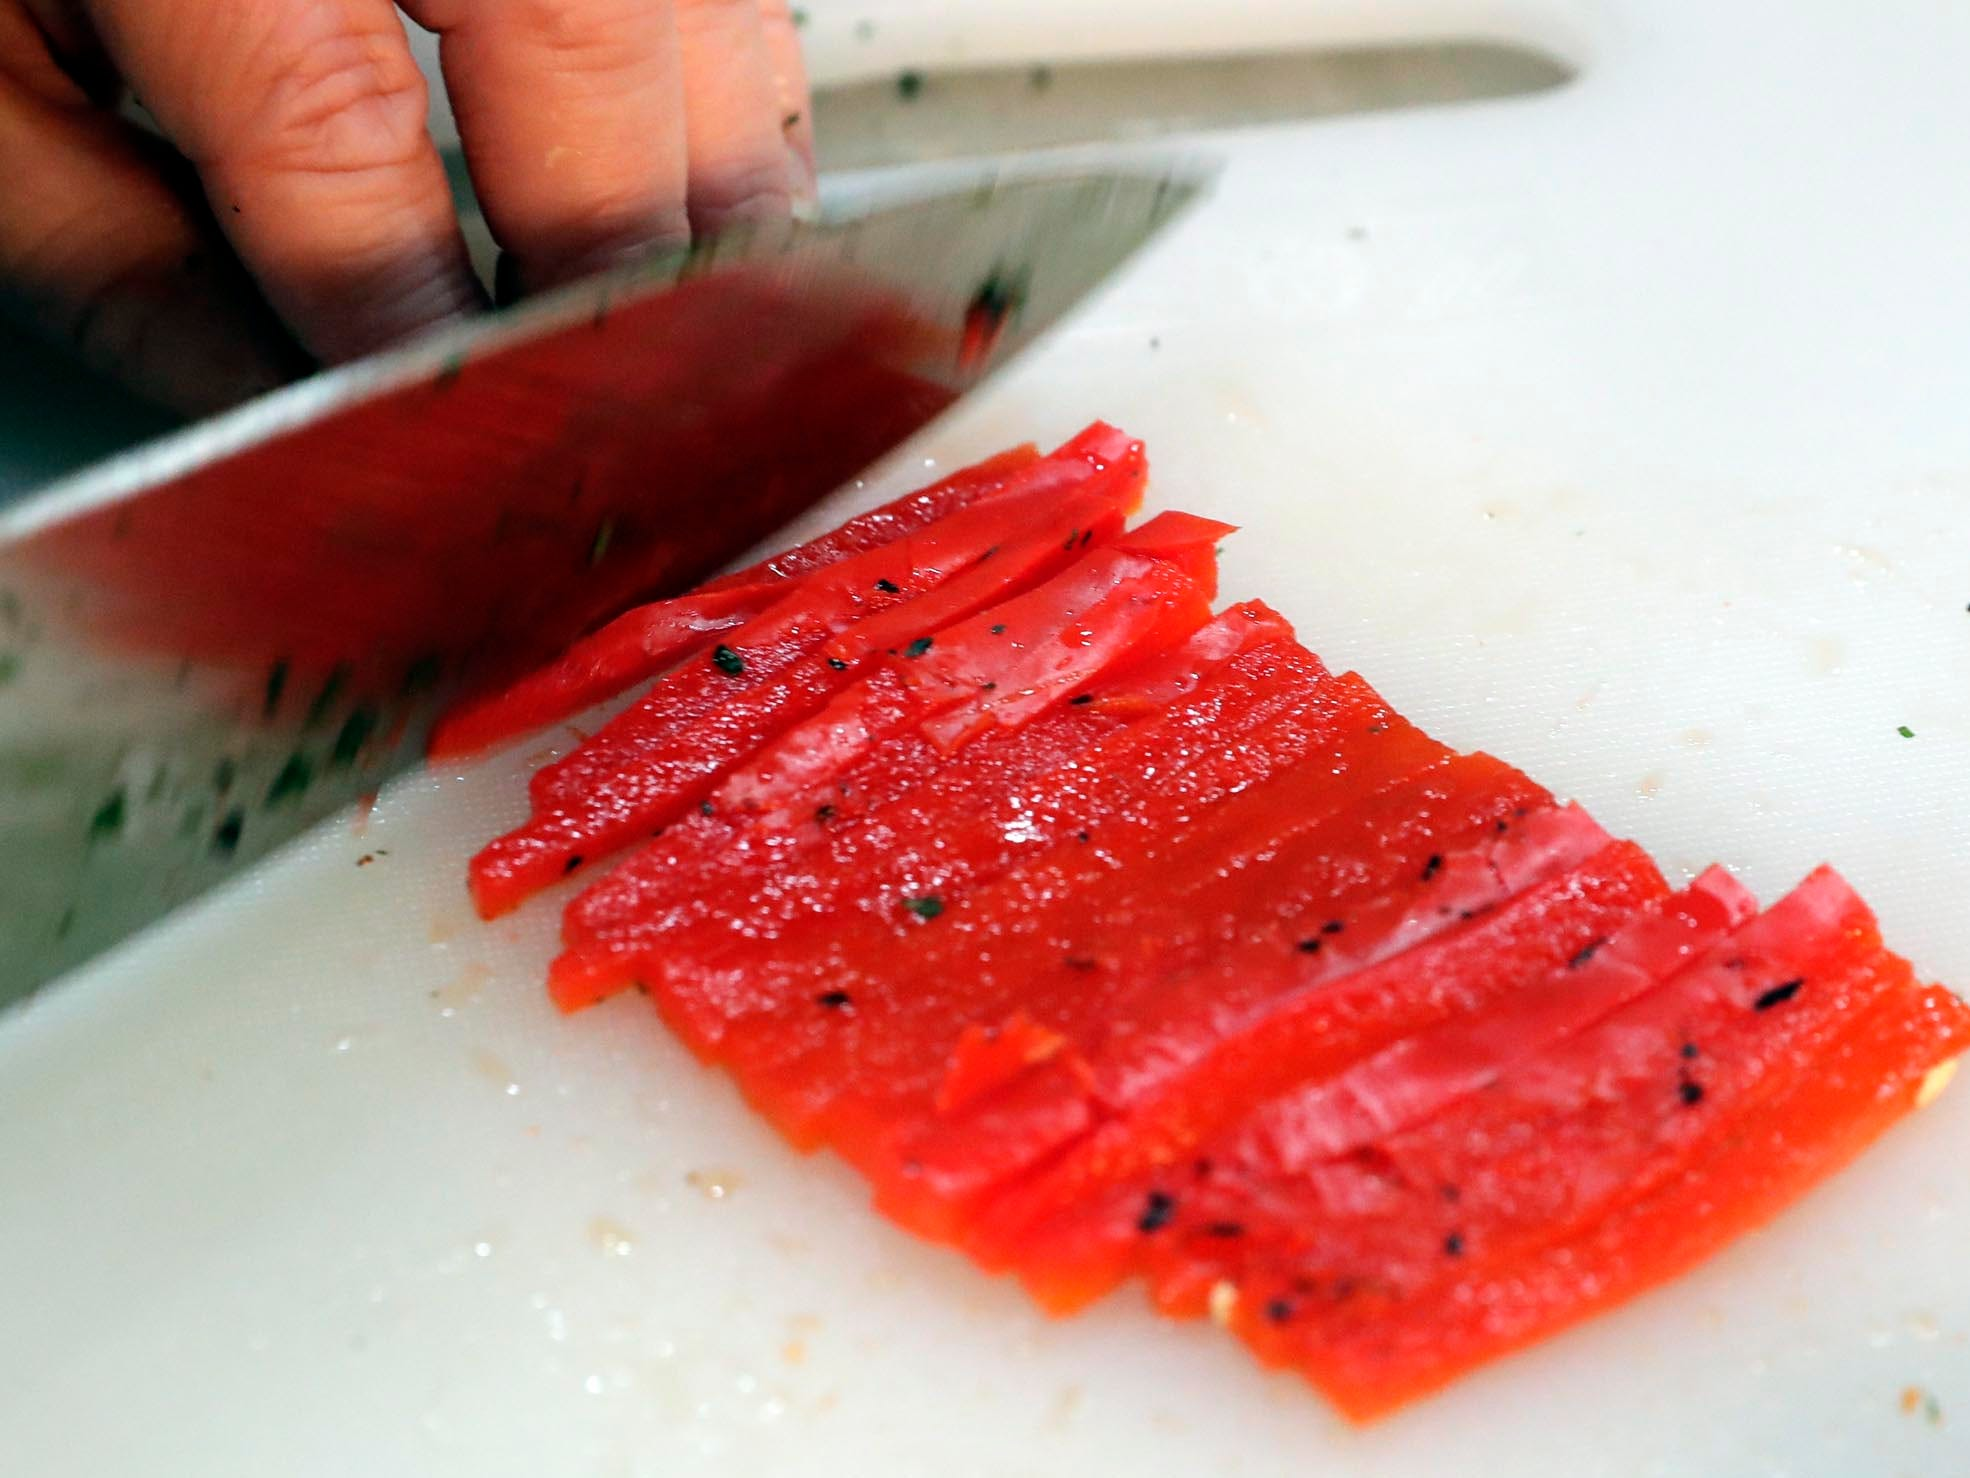 Roasted red peppers are sliced matchstick thin for one of the ravioli sauces.